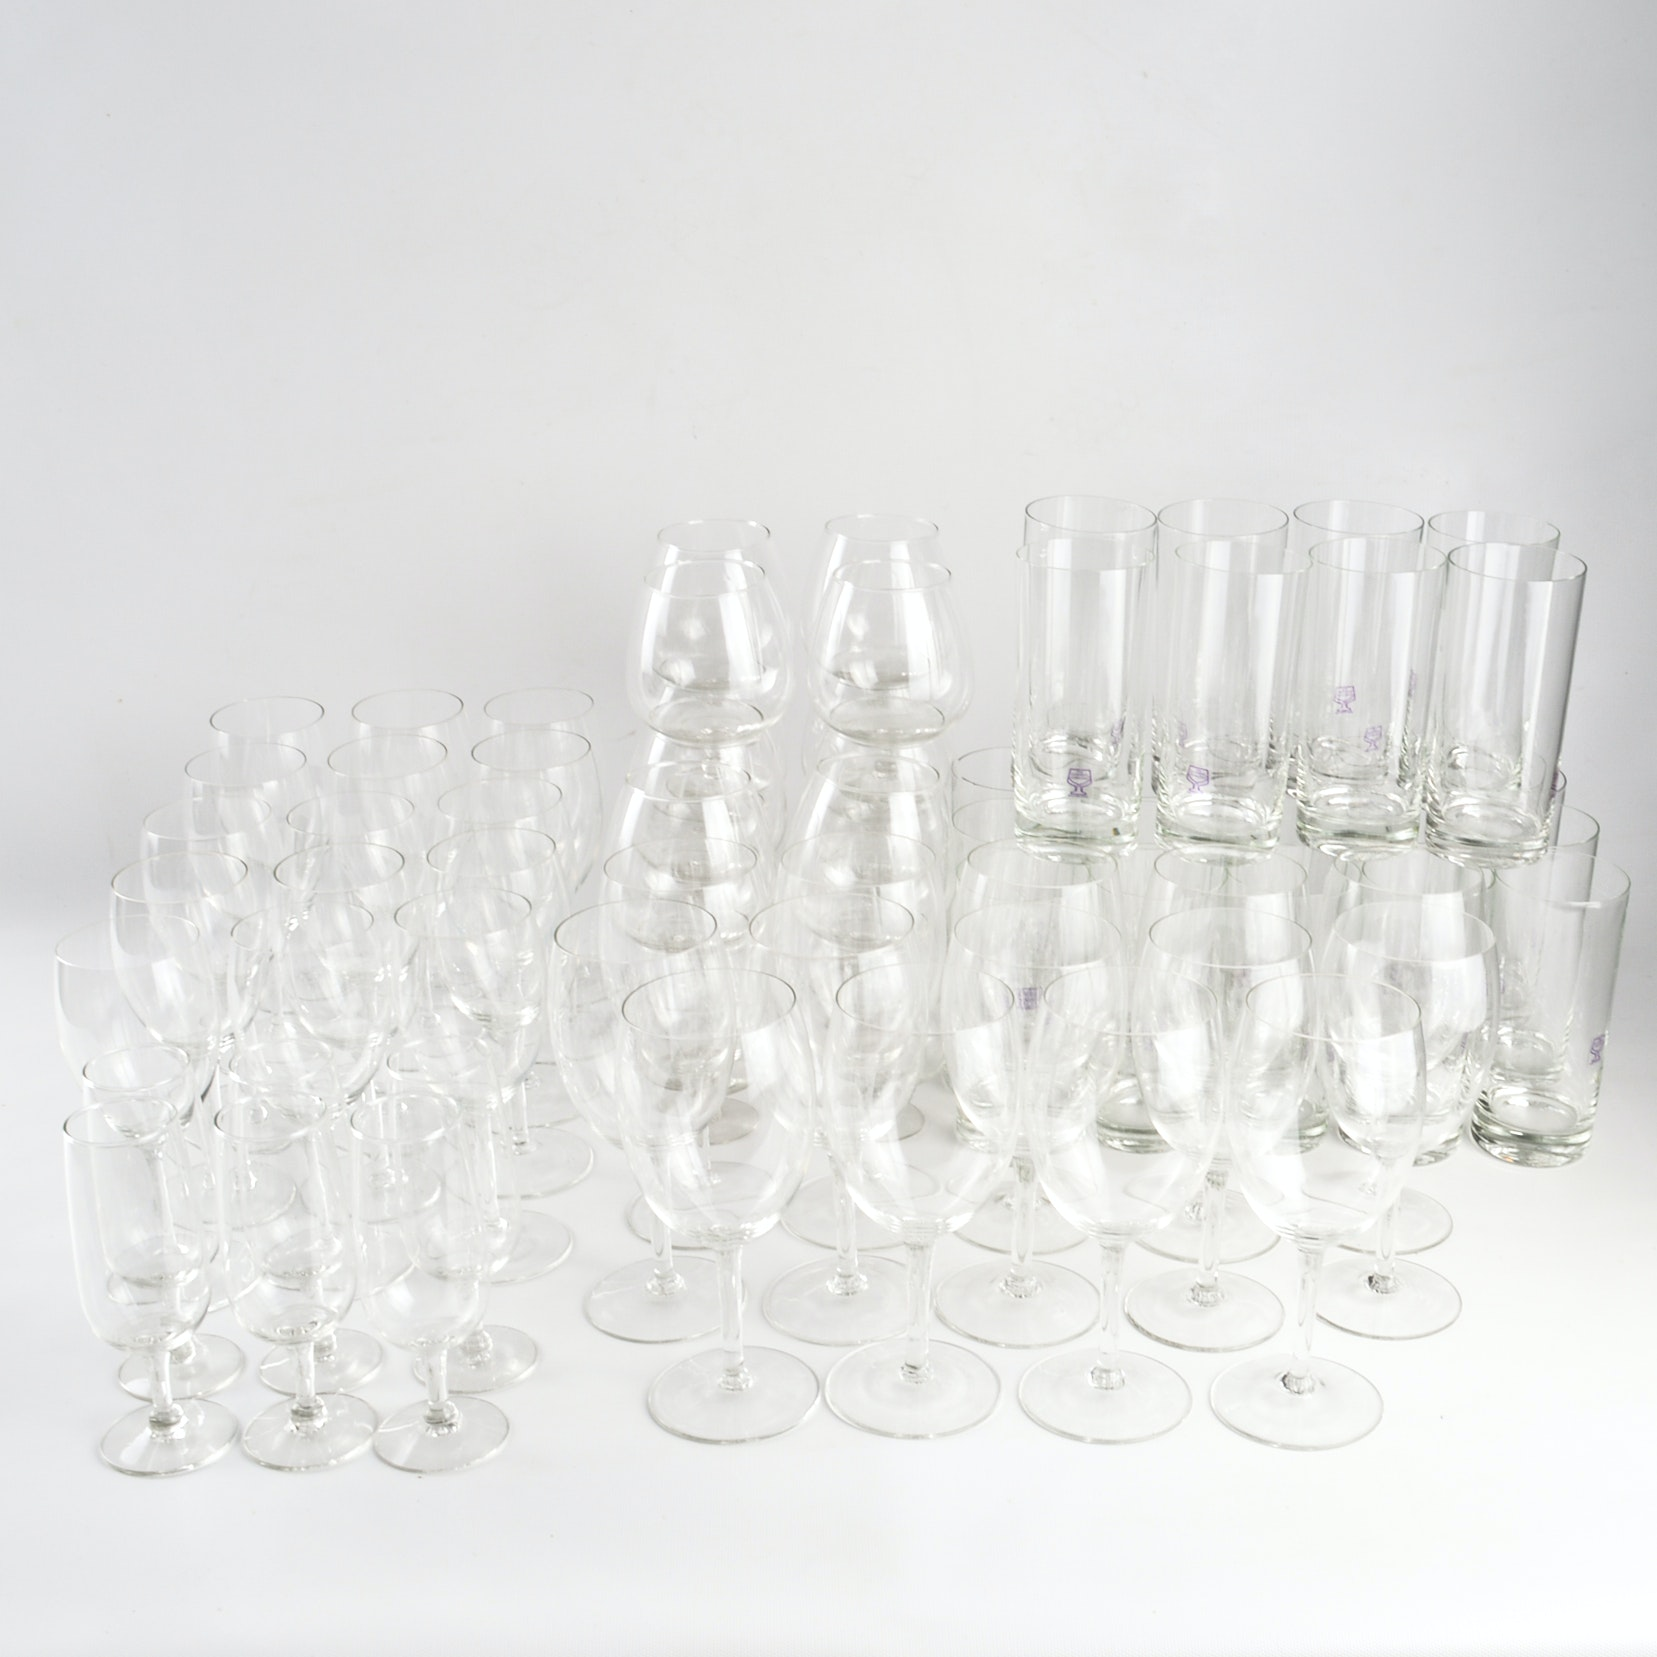 Generous Assortment of Clear Glass Barware